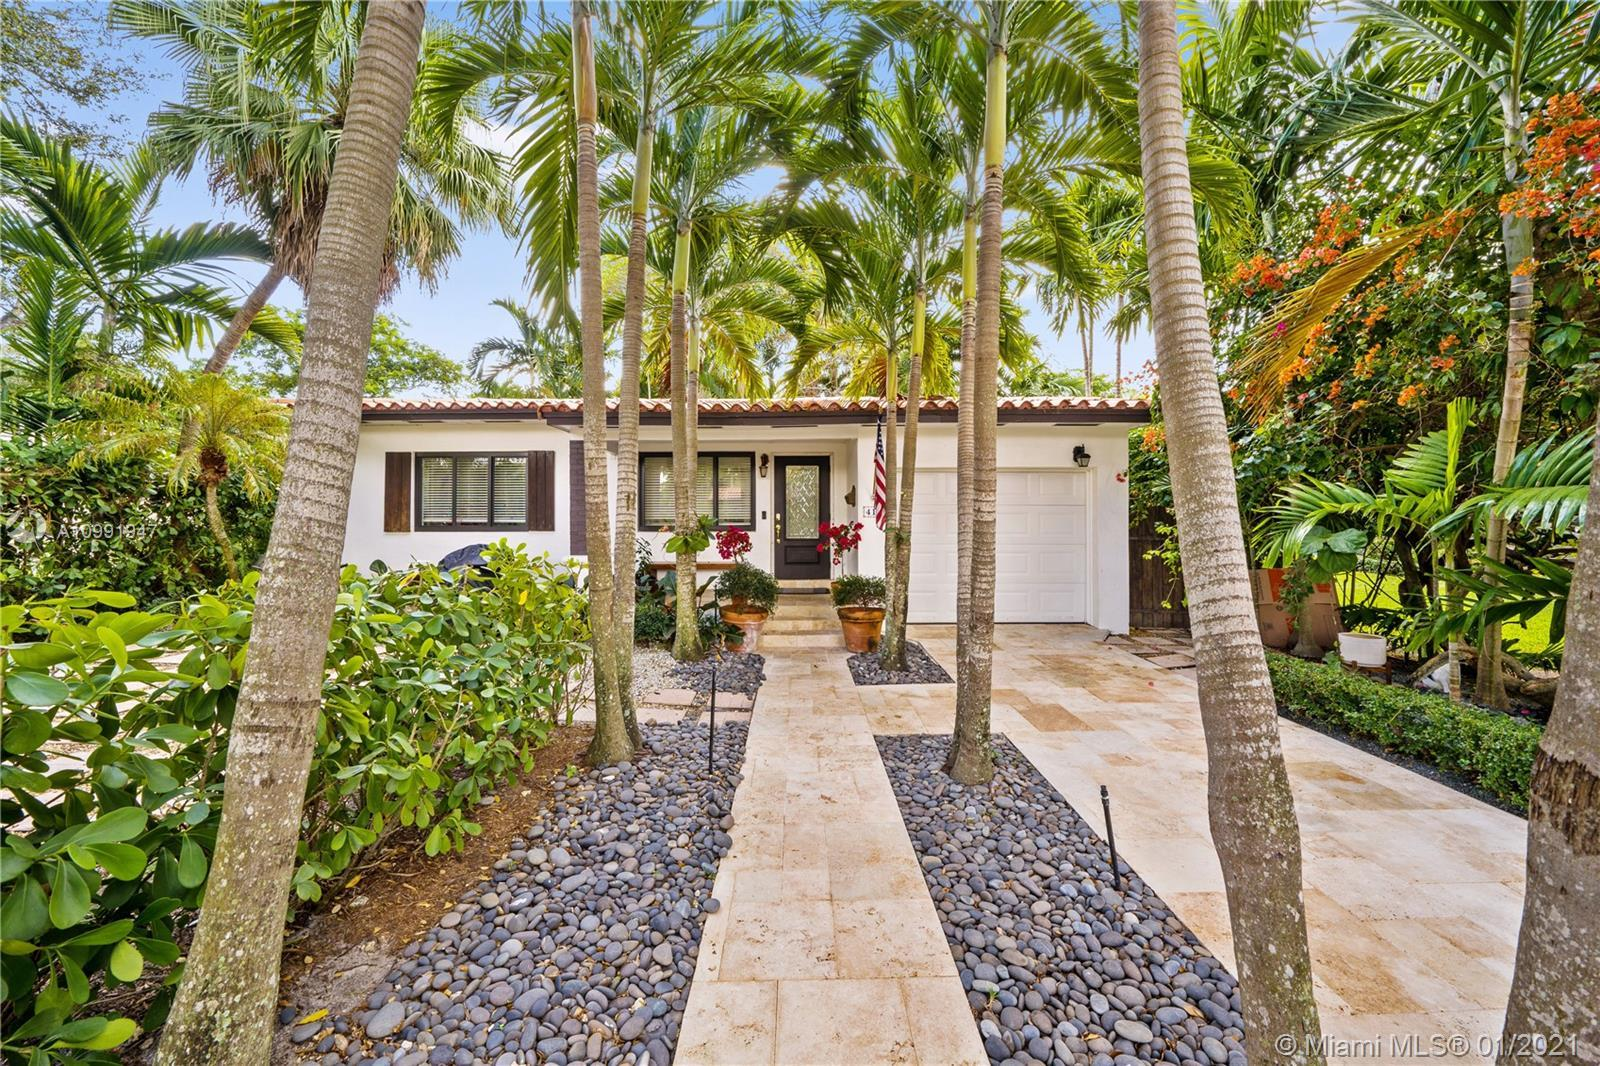 Welcome home to 416 Rosaro Ave - situated in the highly sought out South Gables. Bright, spacious, m